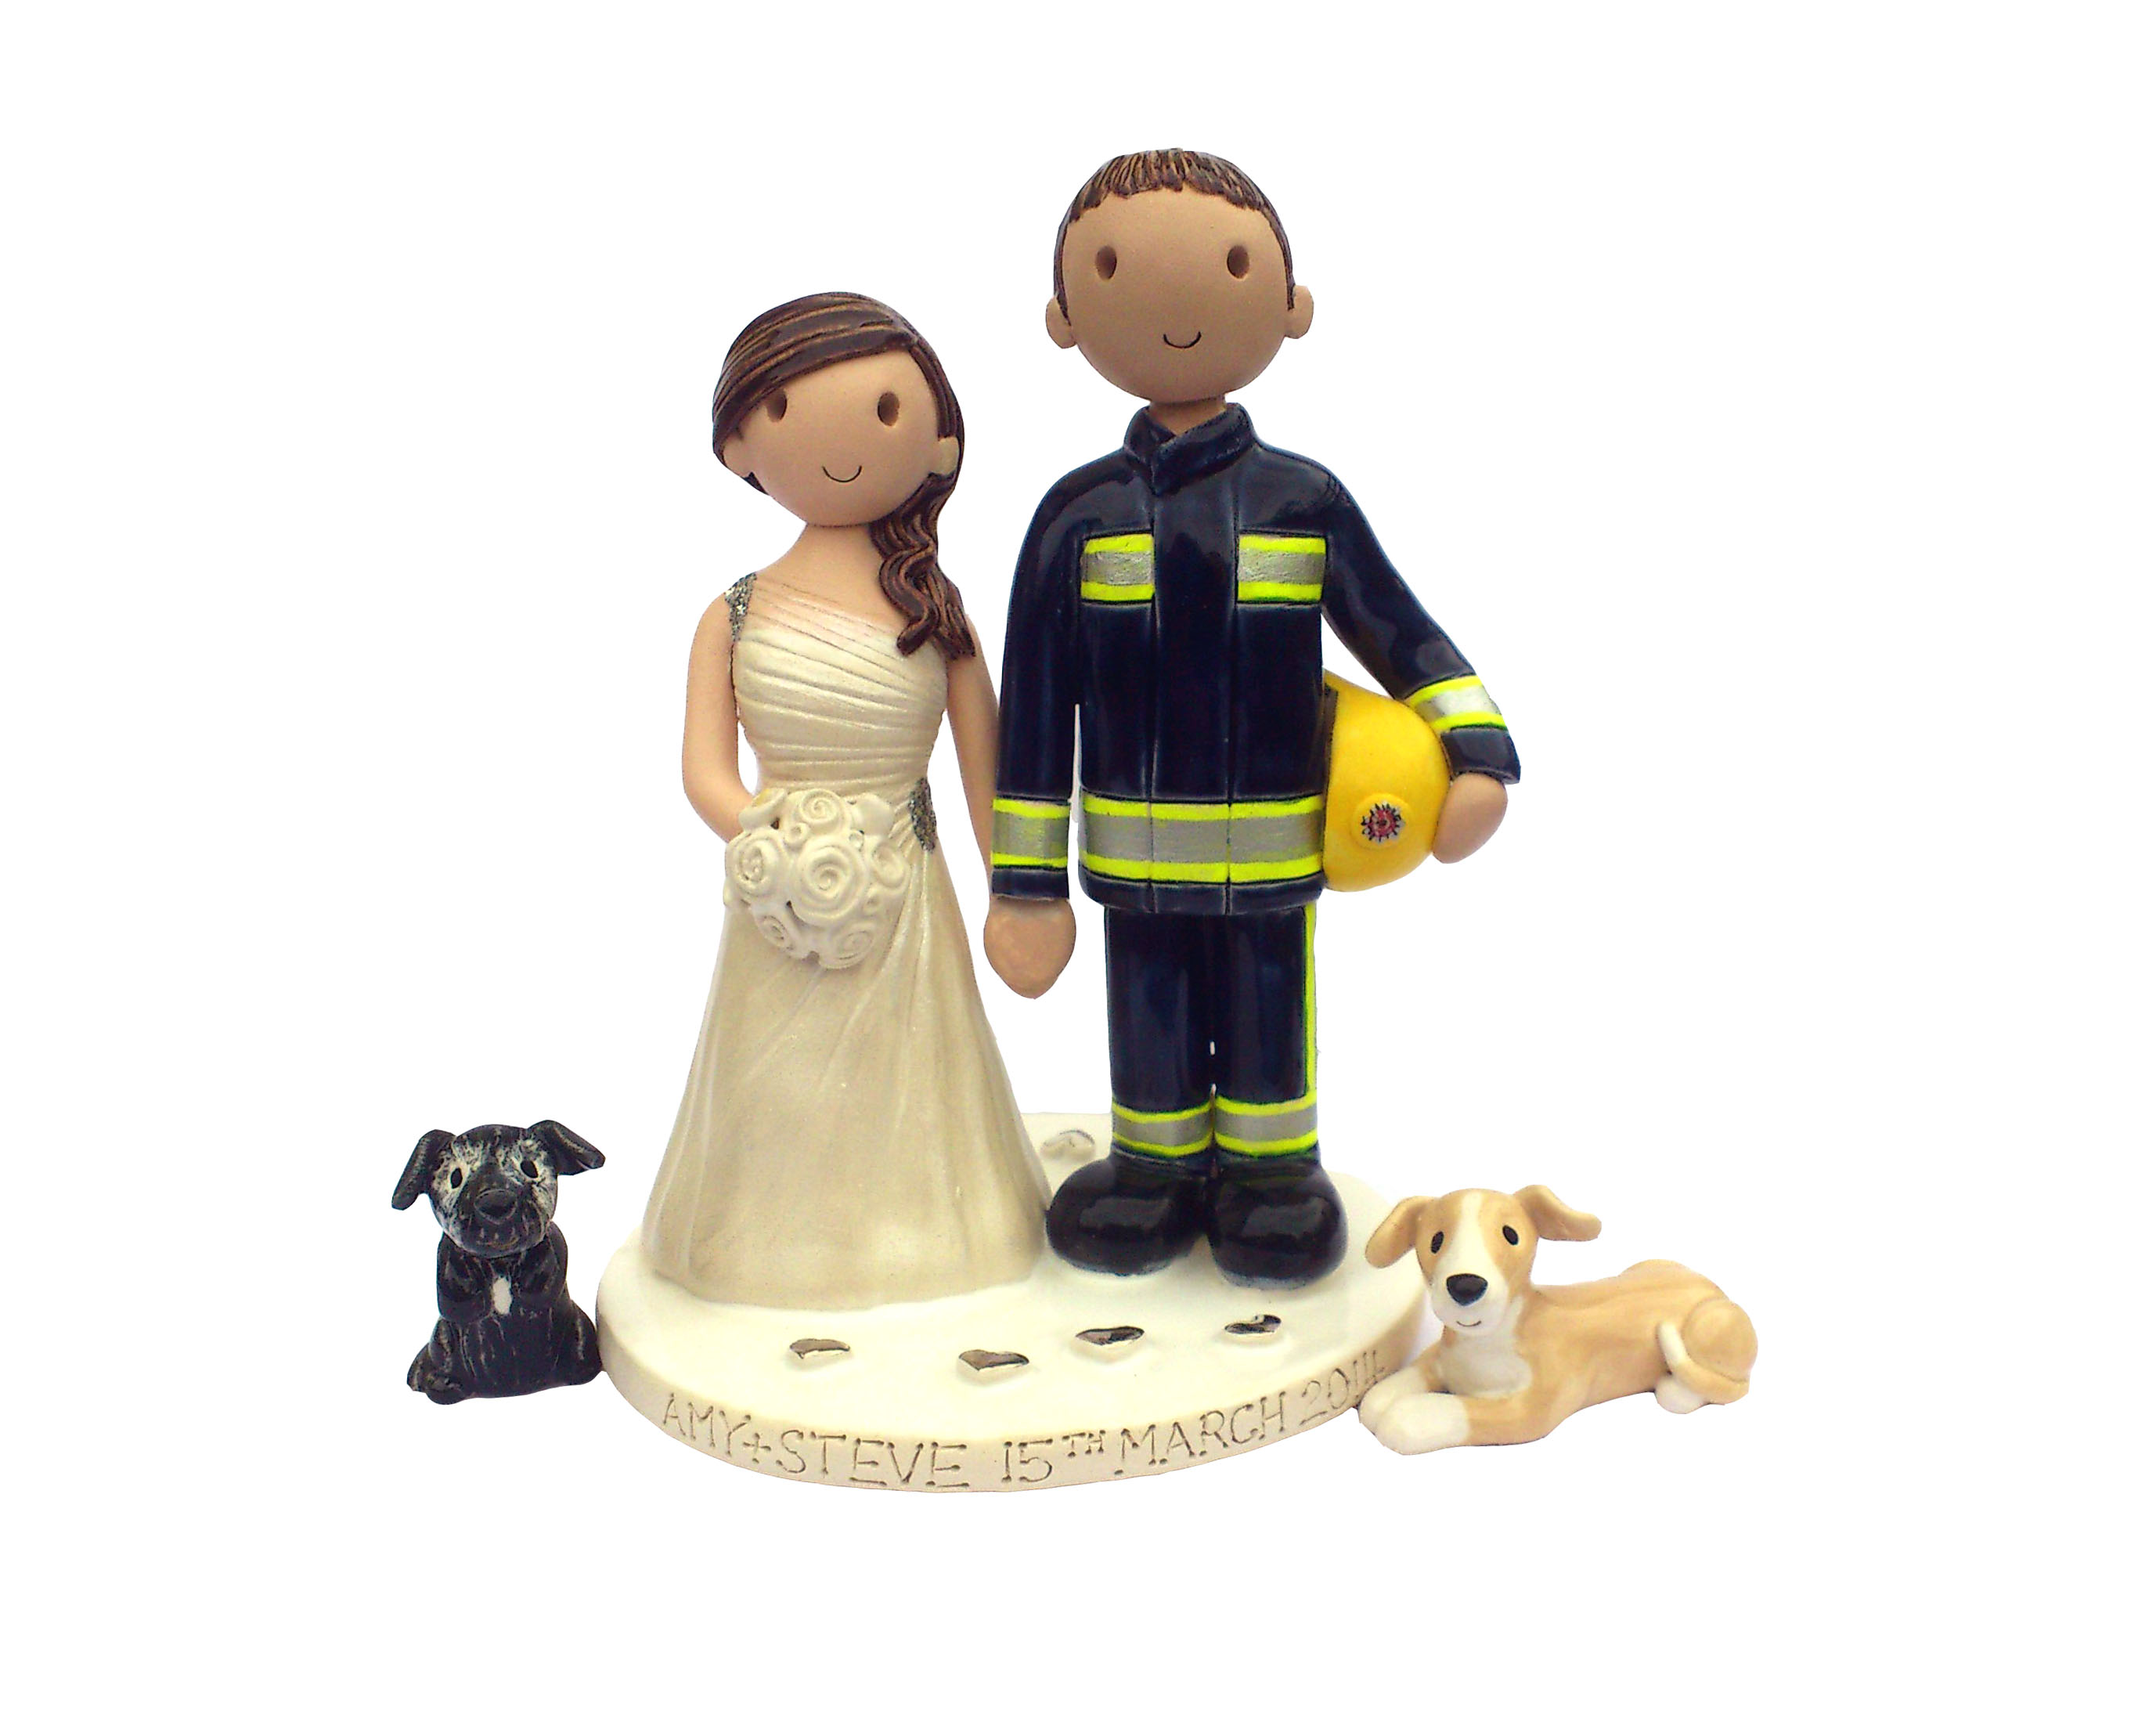 personalised clay wedding cake toppers uk wedding cake toppers gallery made personalised cake 18210